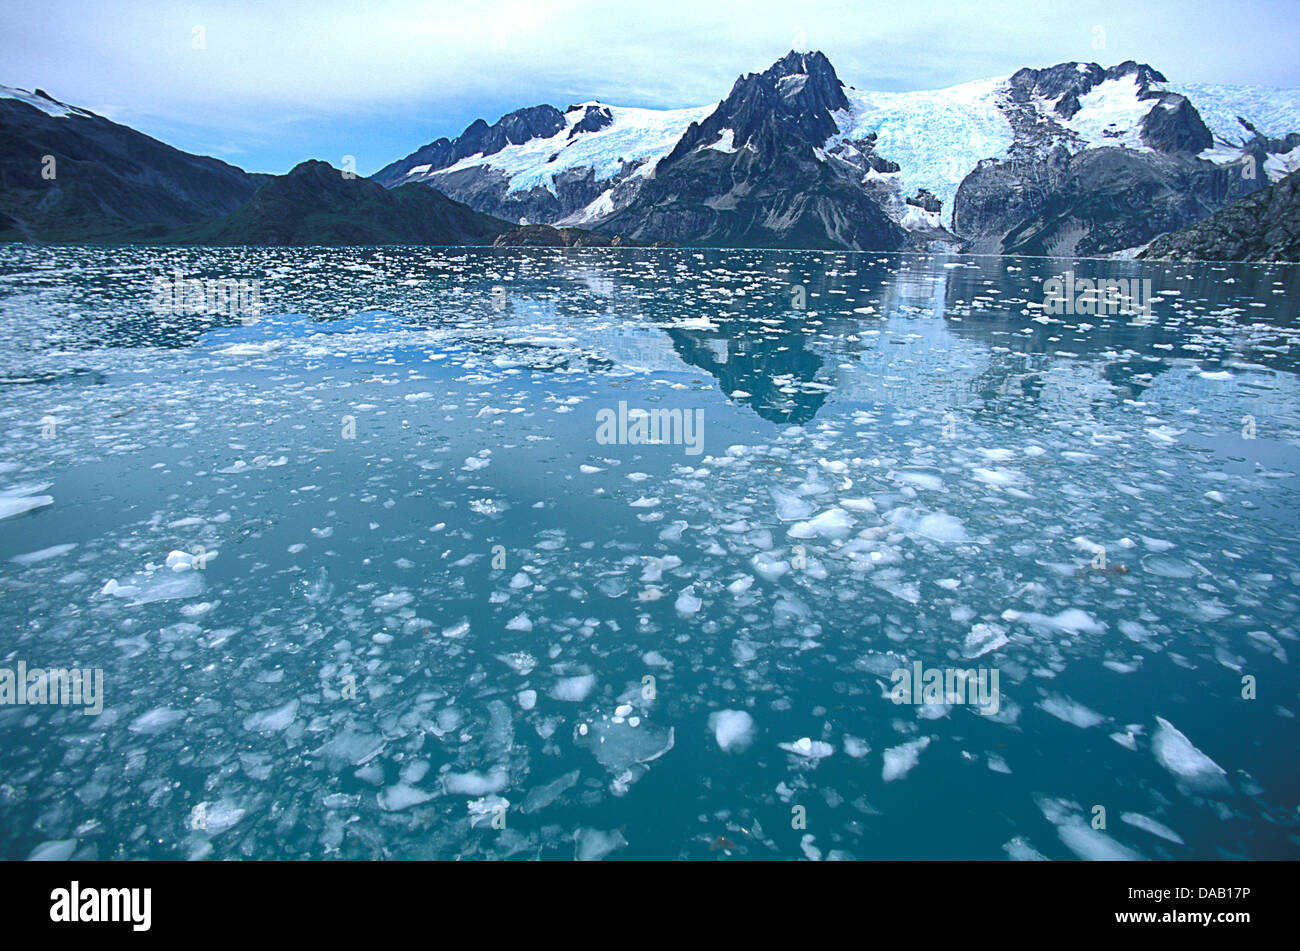 Northwestern Fjord, Kenai Fjords, National Park, Alaska, USA, icy, water, glacier, mountains, reflection, cold, - Stock Image